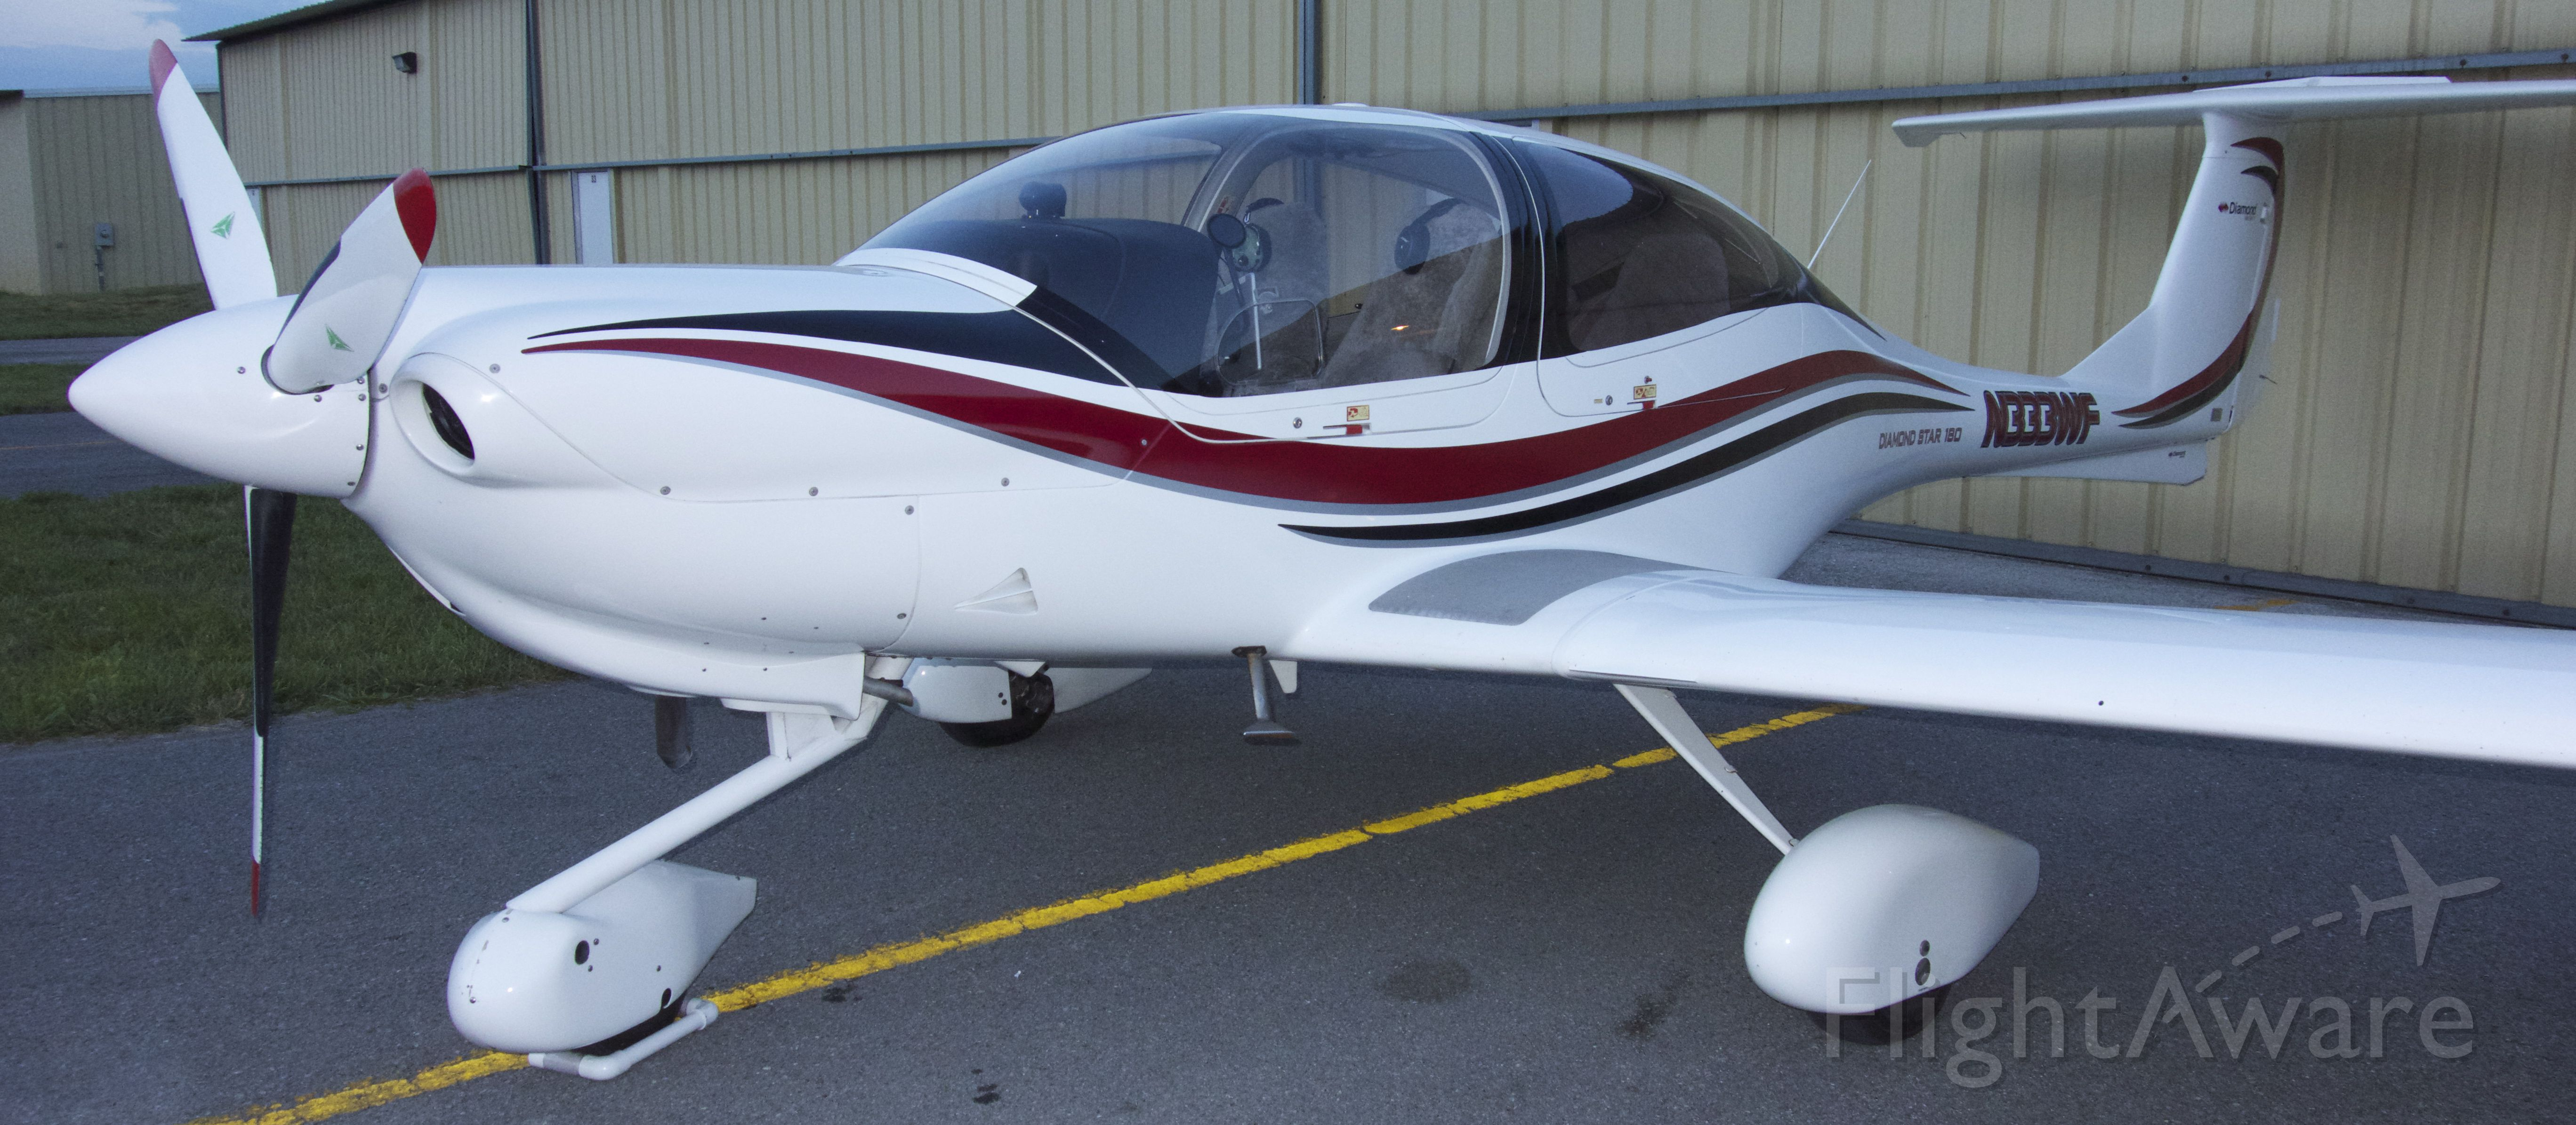 Diamond Star (N333WF) - Just completed the make over